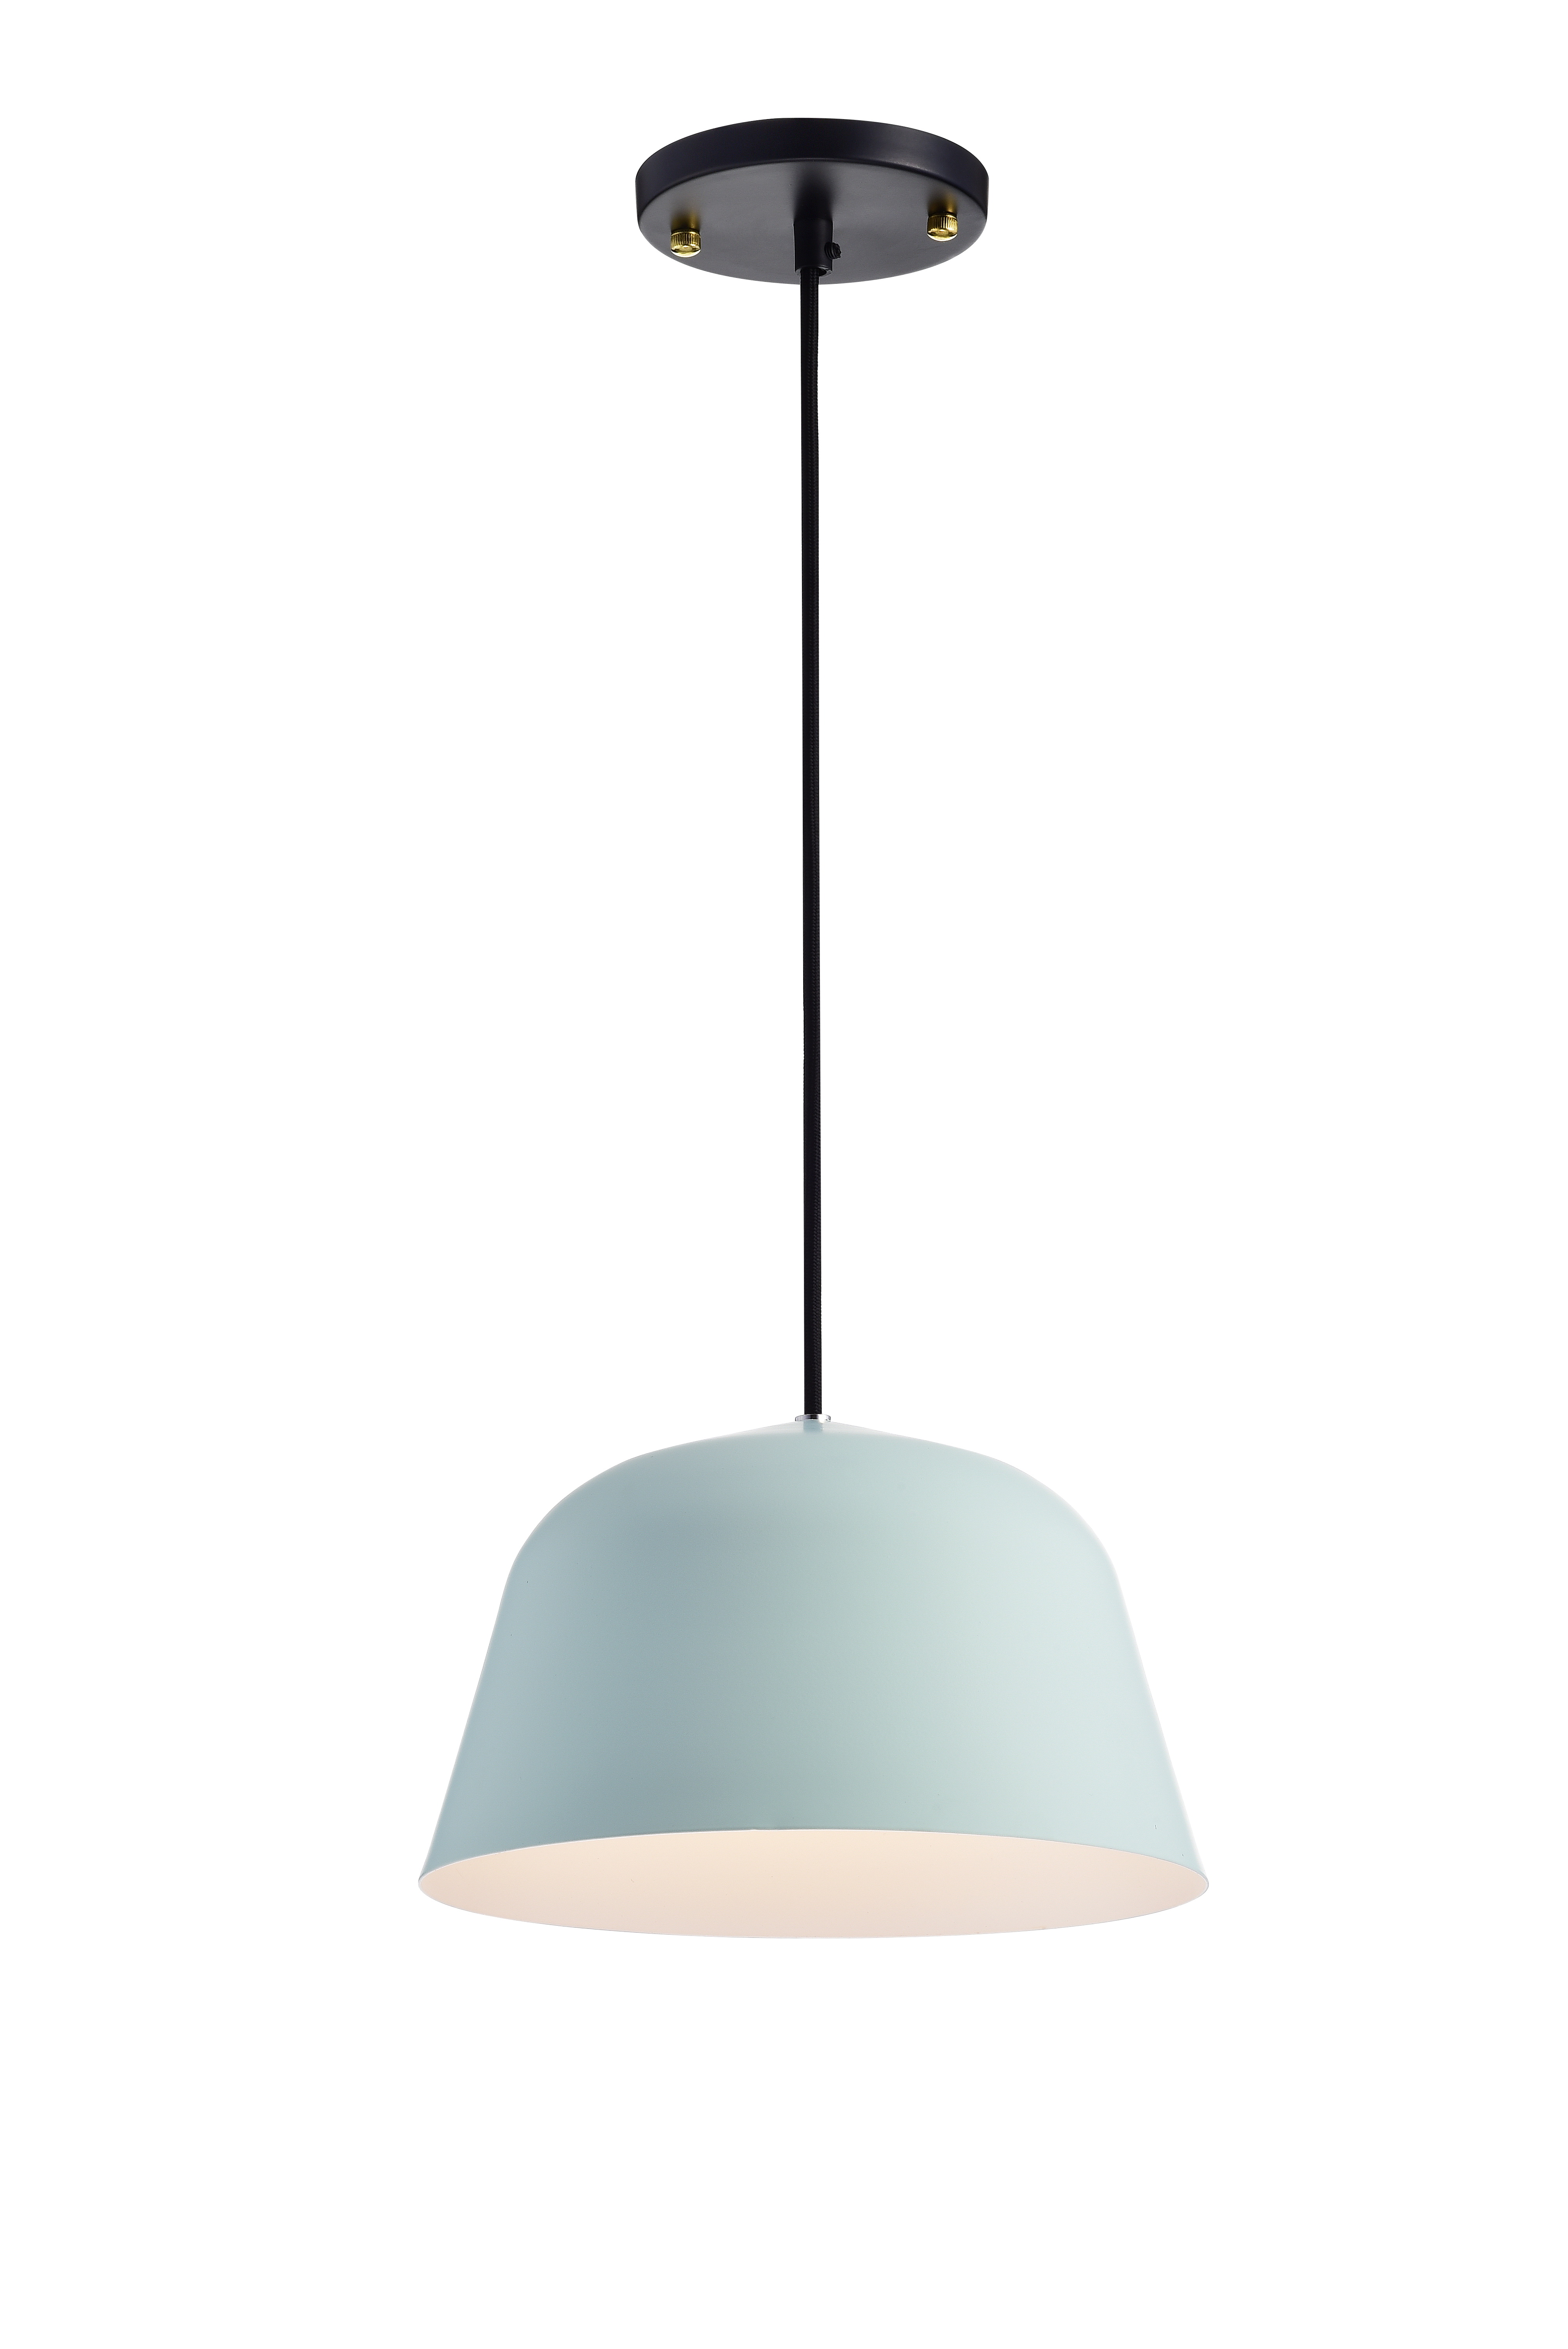 2017 modern new design lamp makalong pendant lamp